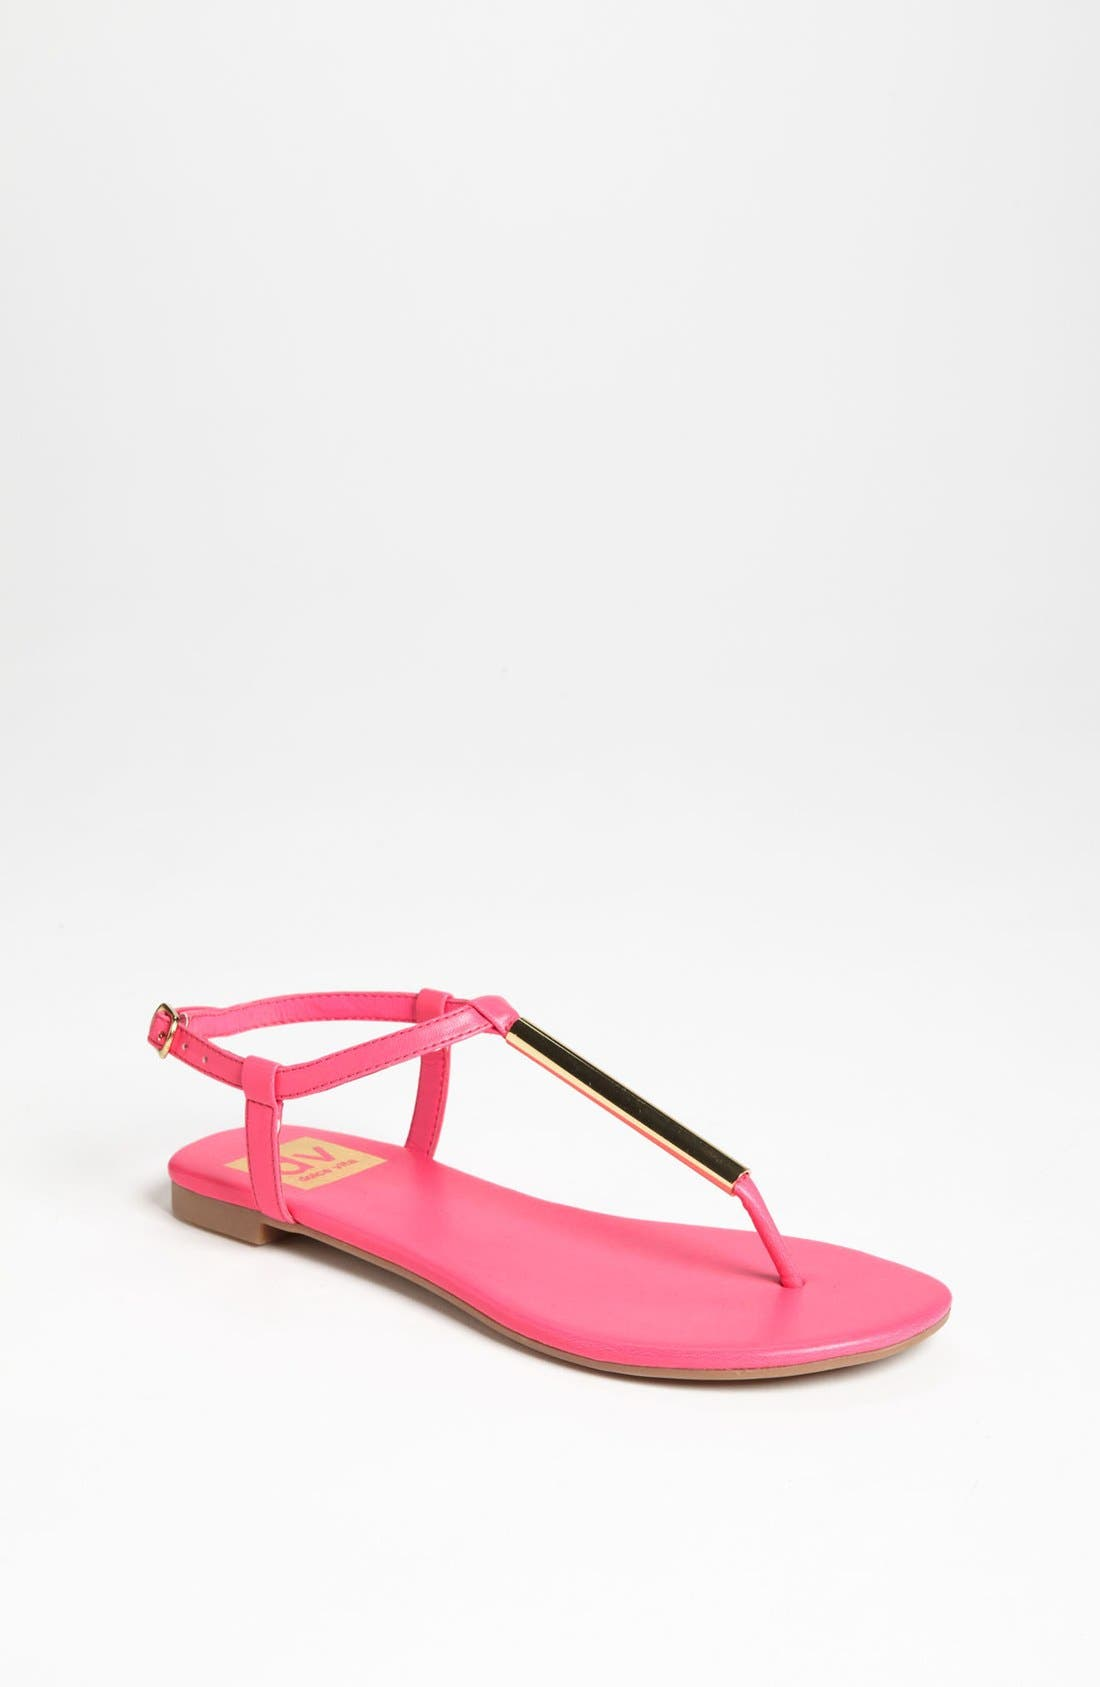 Alternate Image 1 Selected - DV by Dolce Vita 'Amiga' Sandal (Toddler, Little Kid & Big Kid)